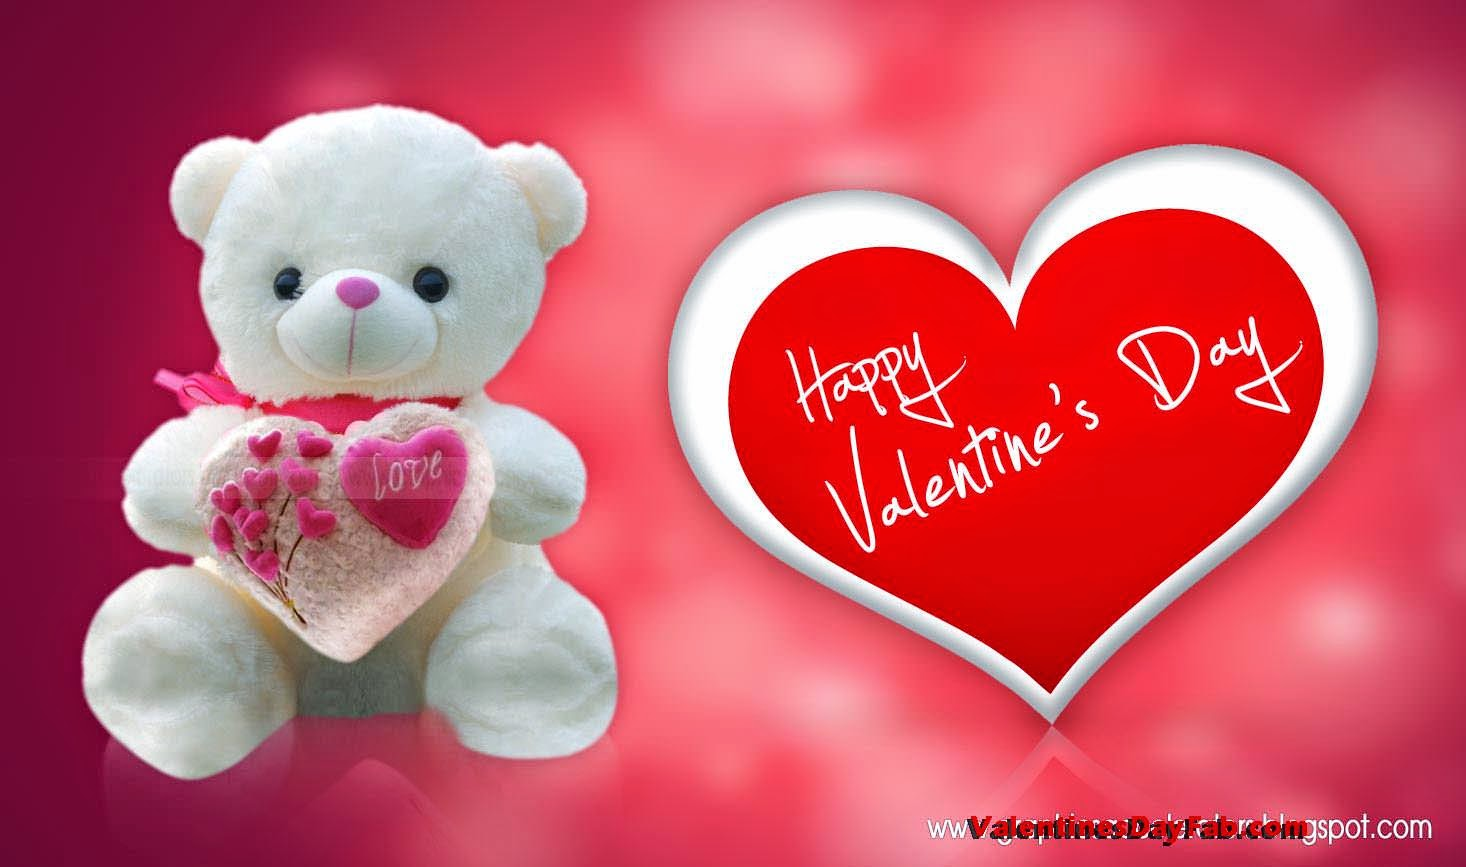 Valentineu0027s Day Photo Cards ? Then You Are At The Right Place. Get The Most